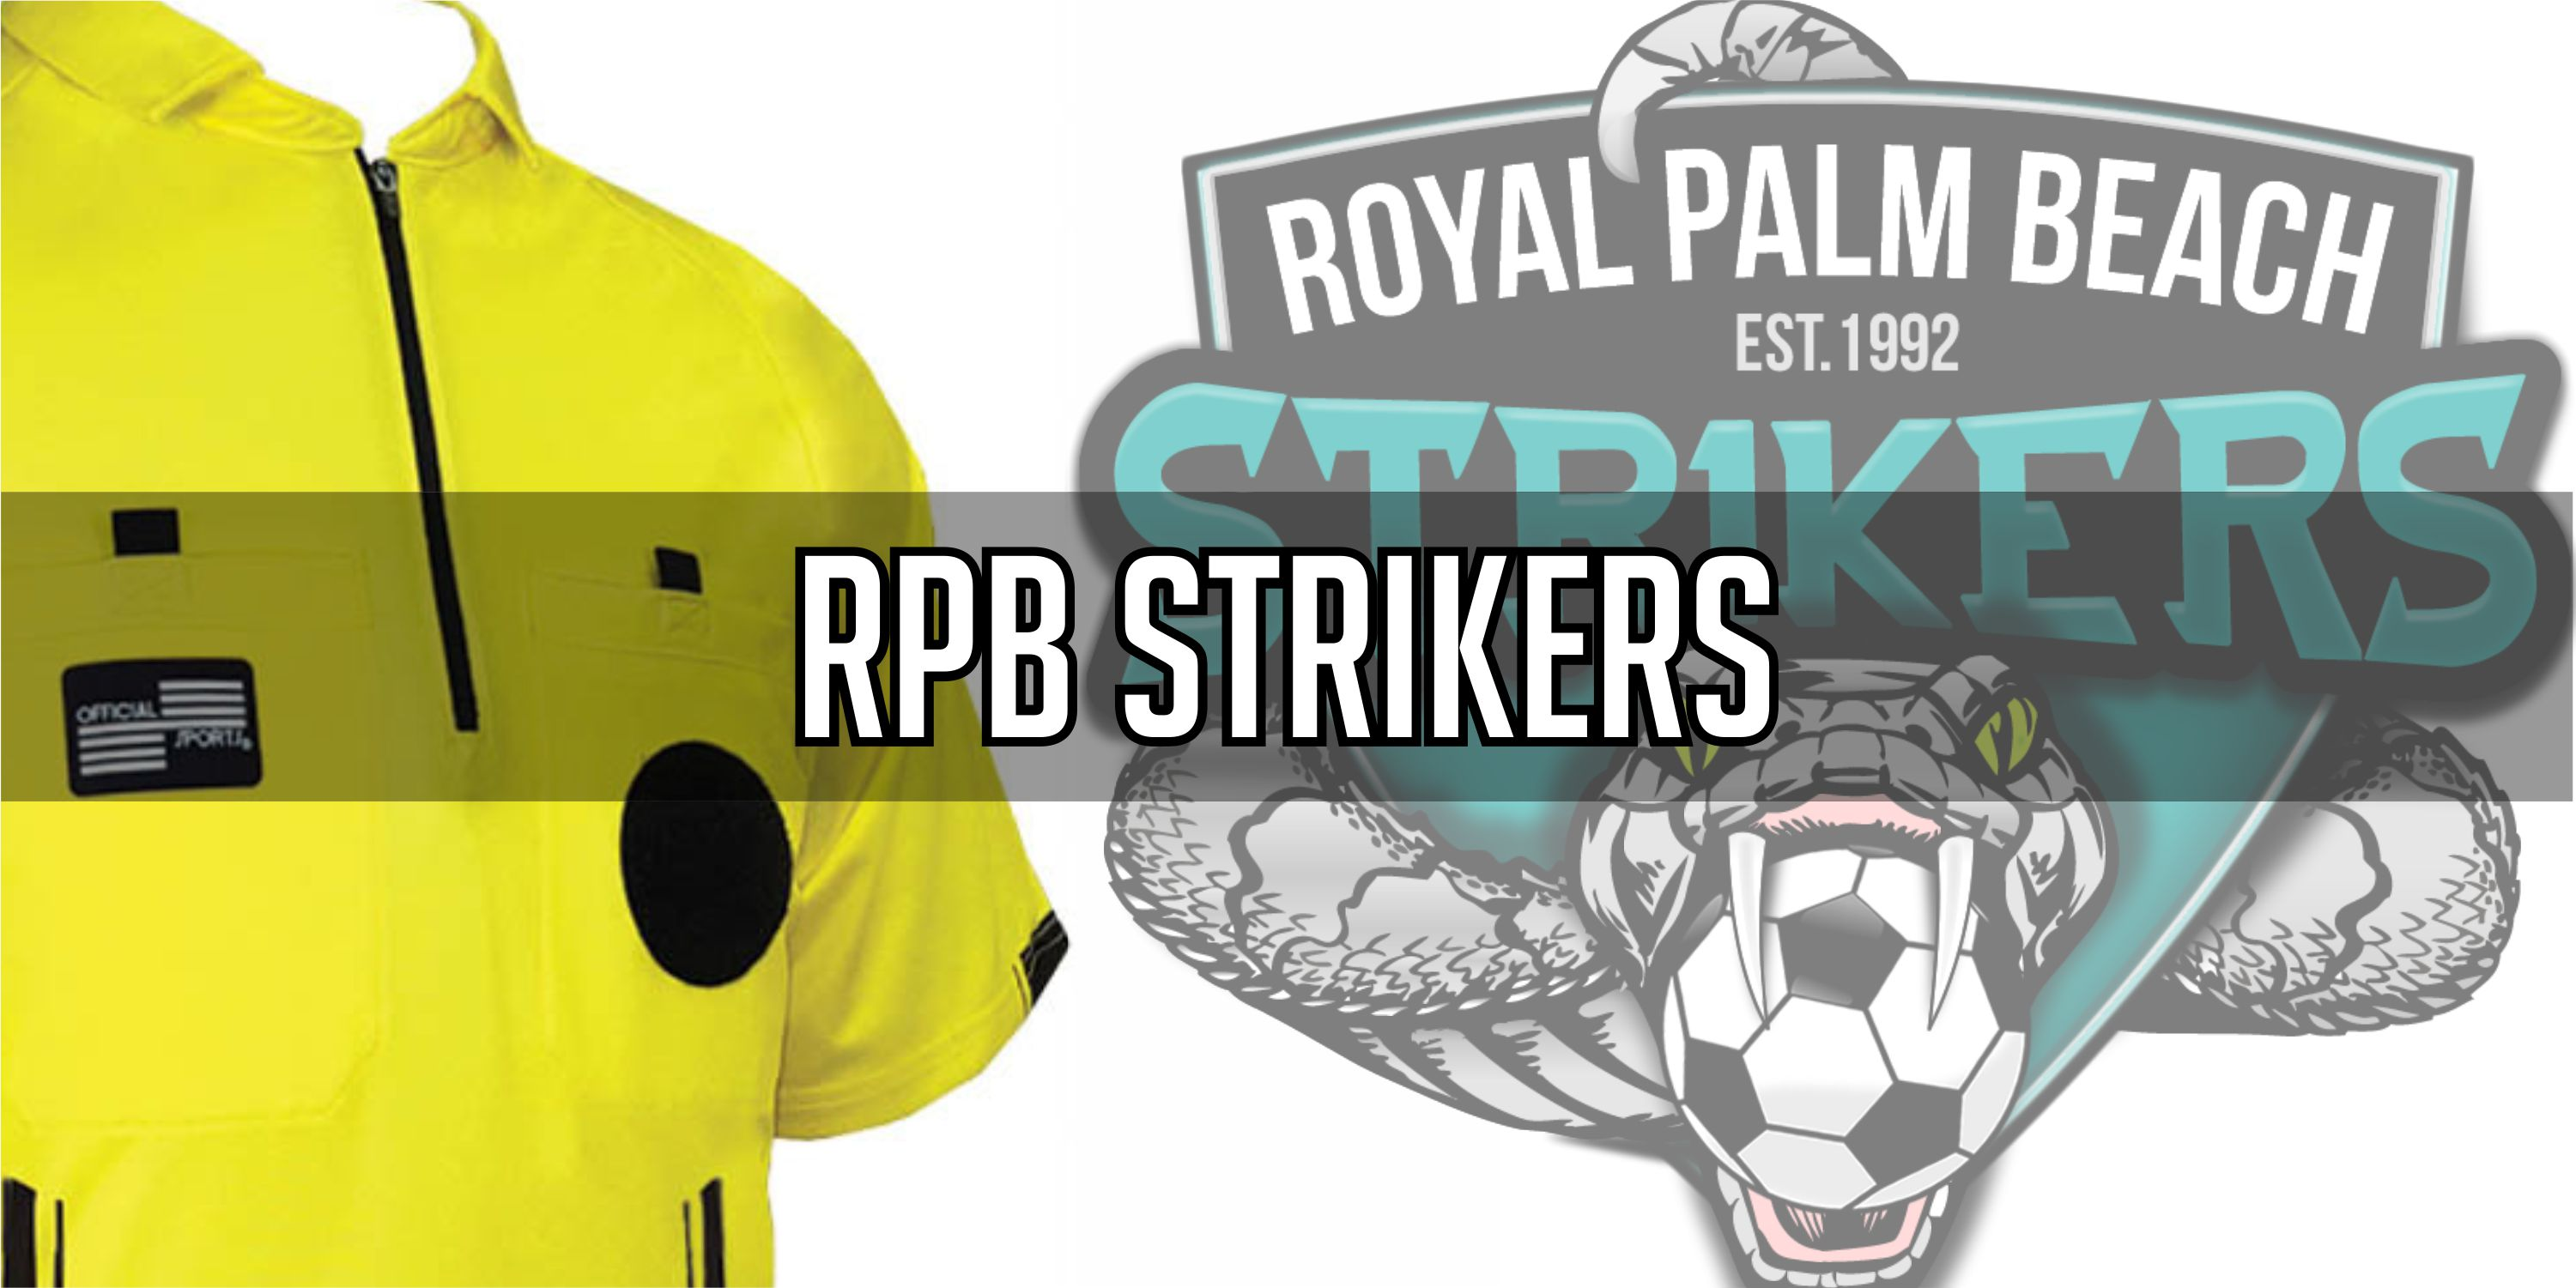 RPB Strikers